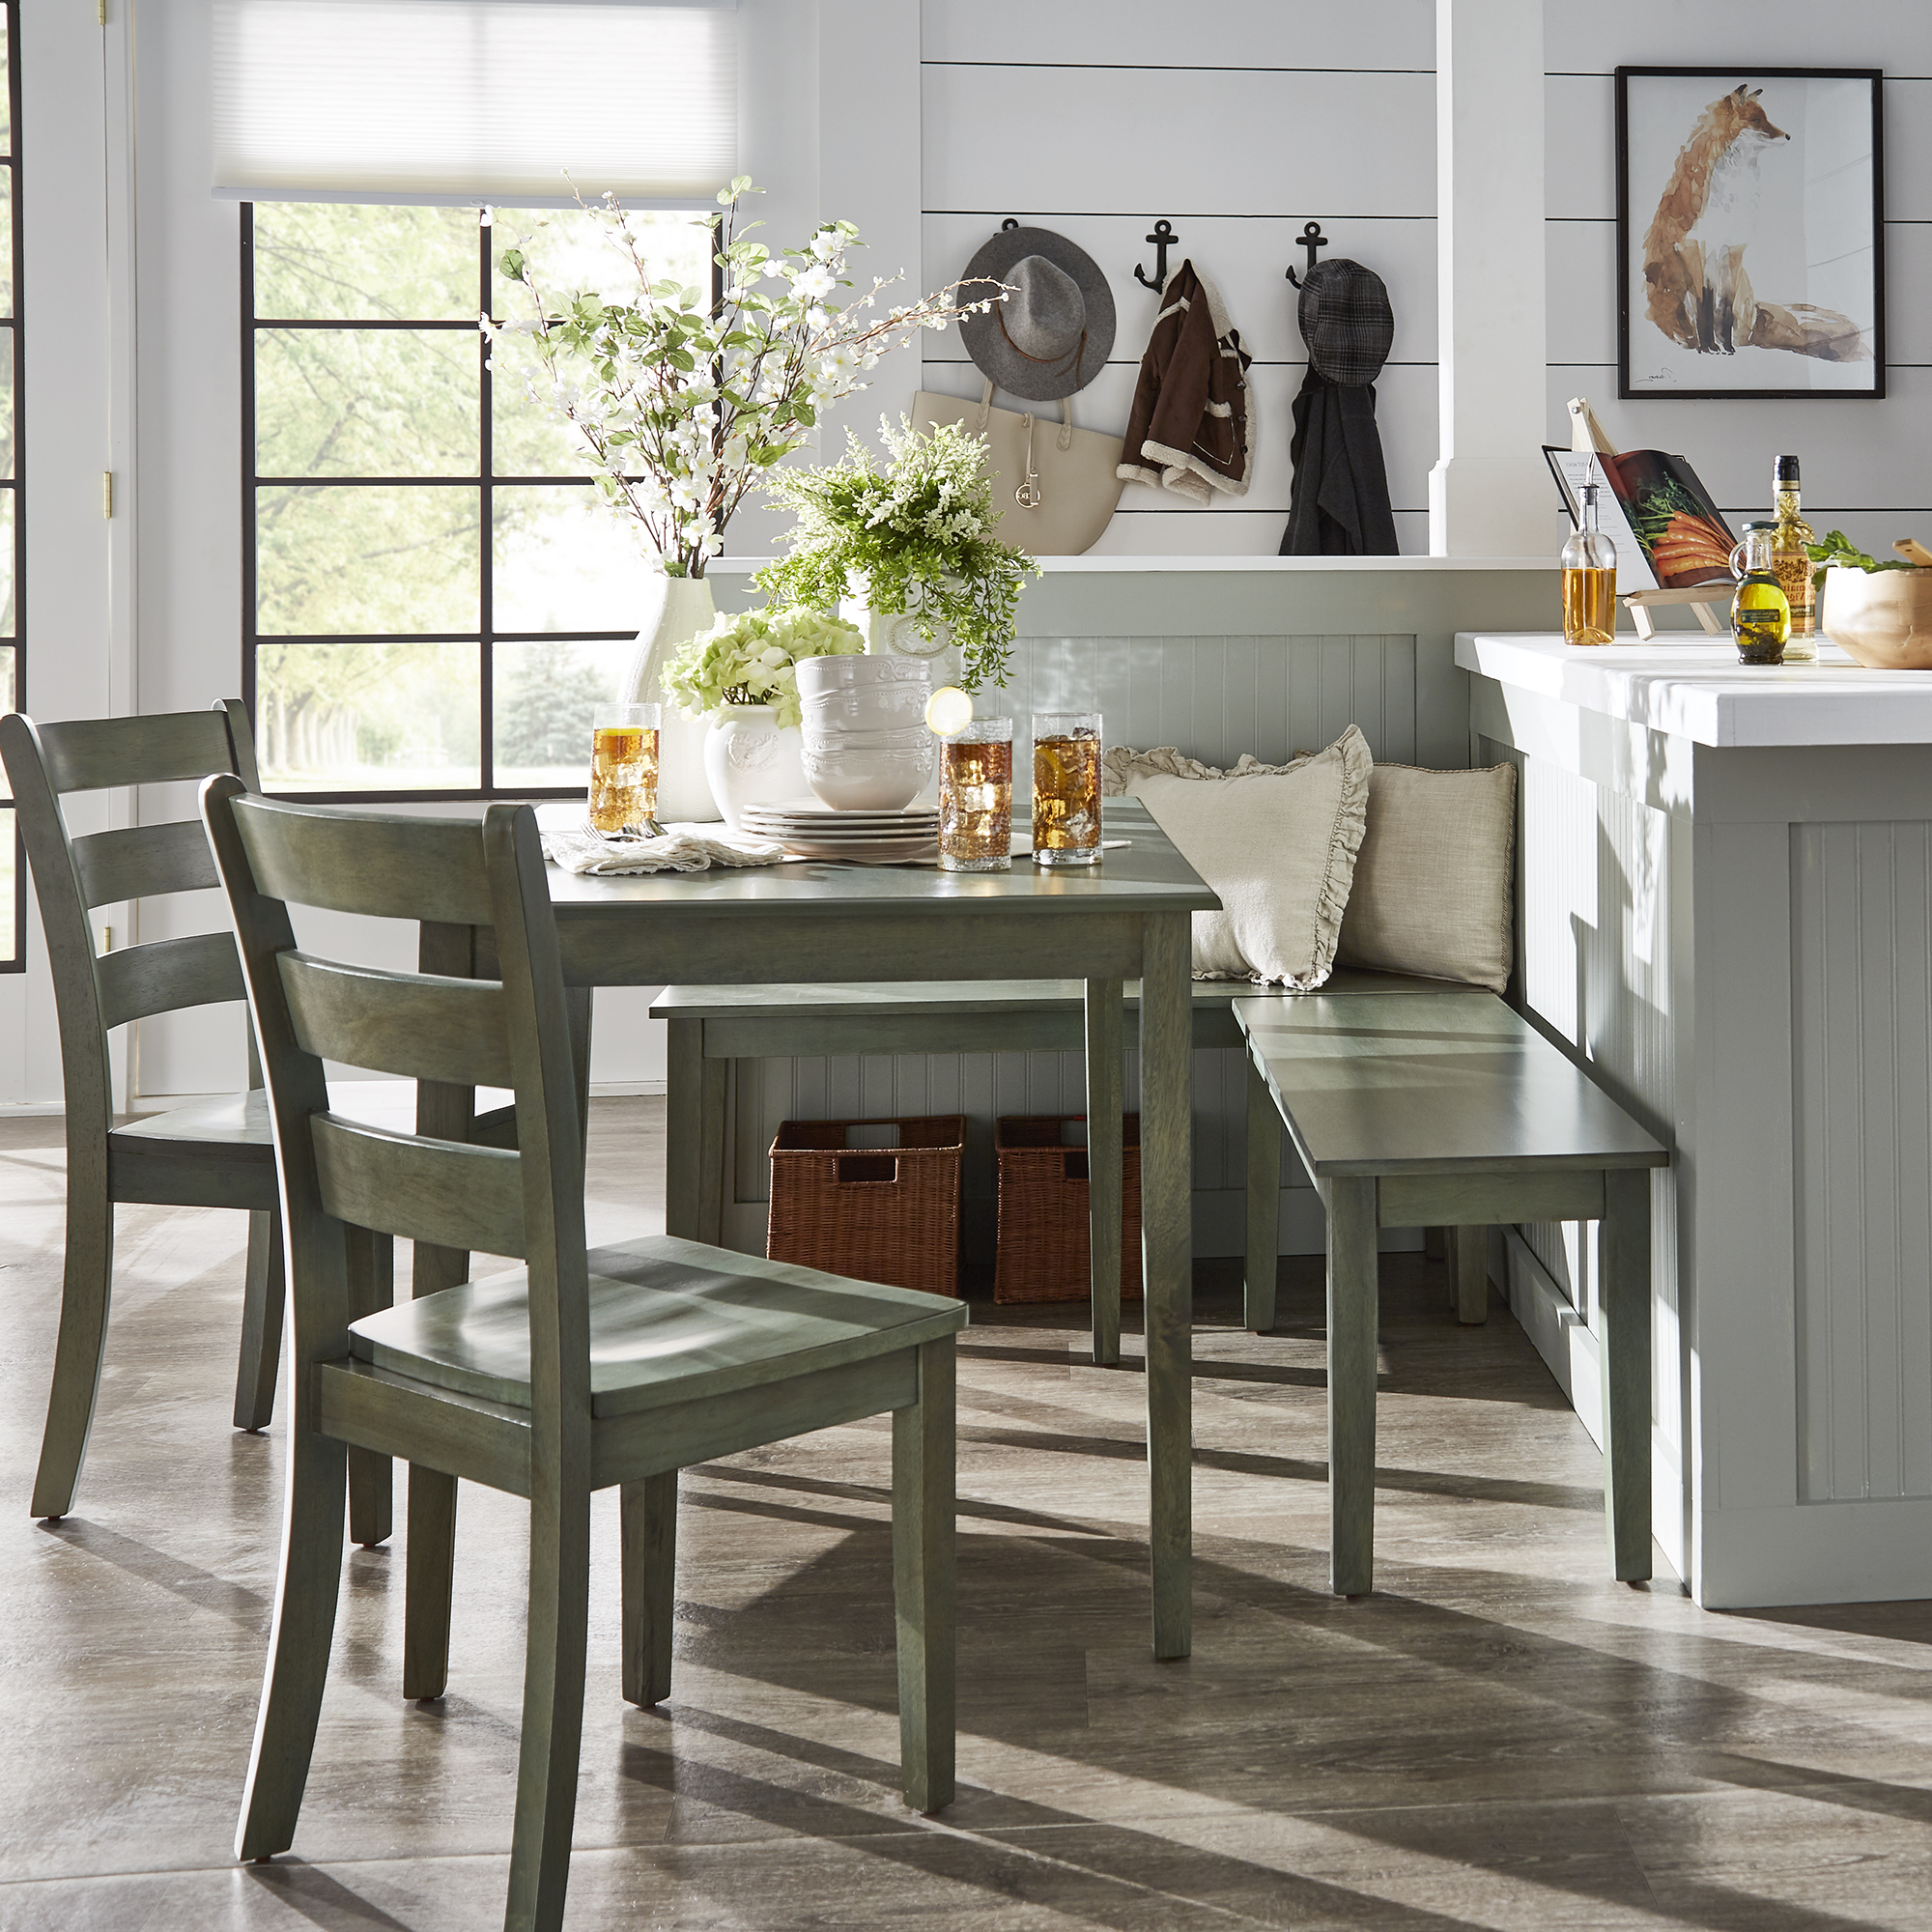 Trendy 5 Piece Breakfast Nook Dining Sets Inside Weston Home Lexington 5 Piece Breakfast Nook Dining Set, Rectangular Table,  Multiple Colors (View 17 of 20)